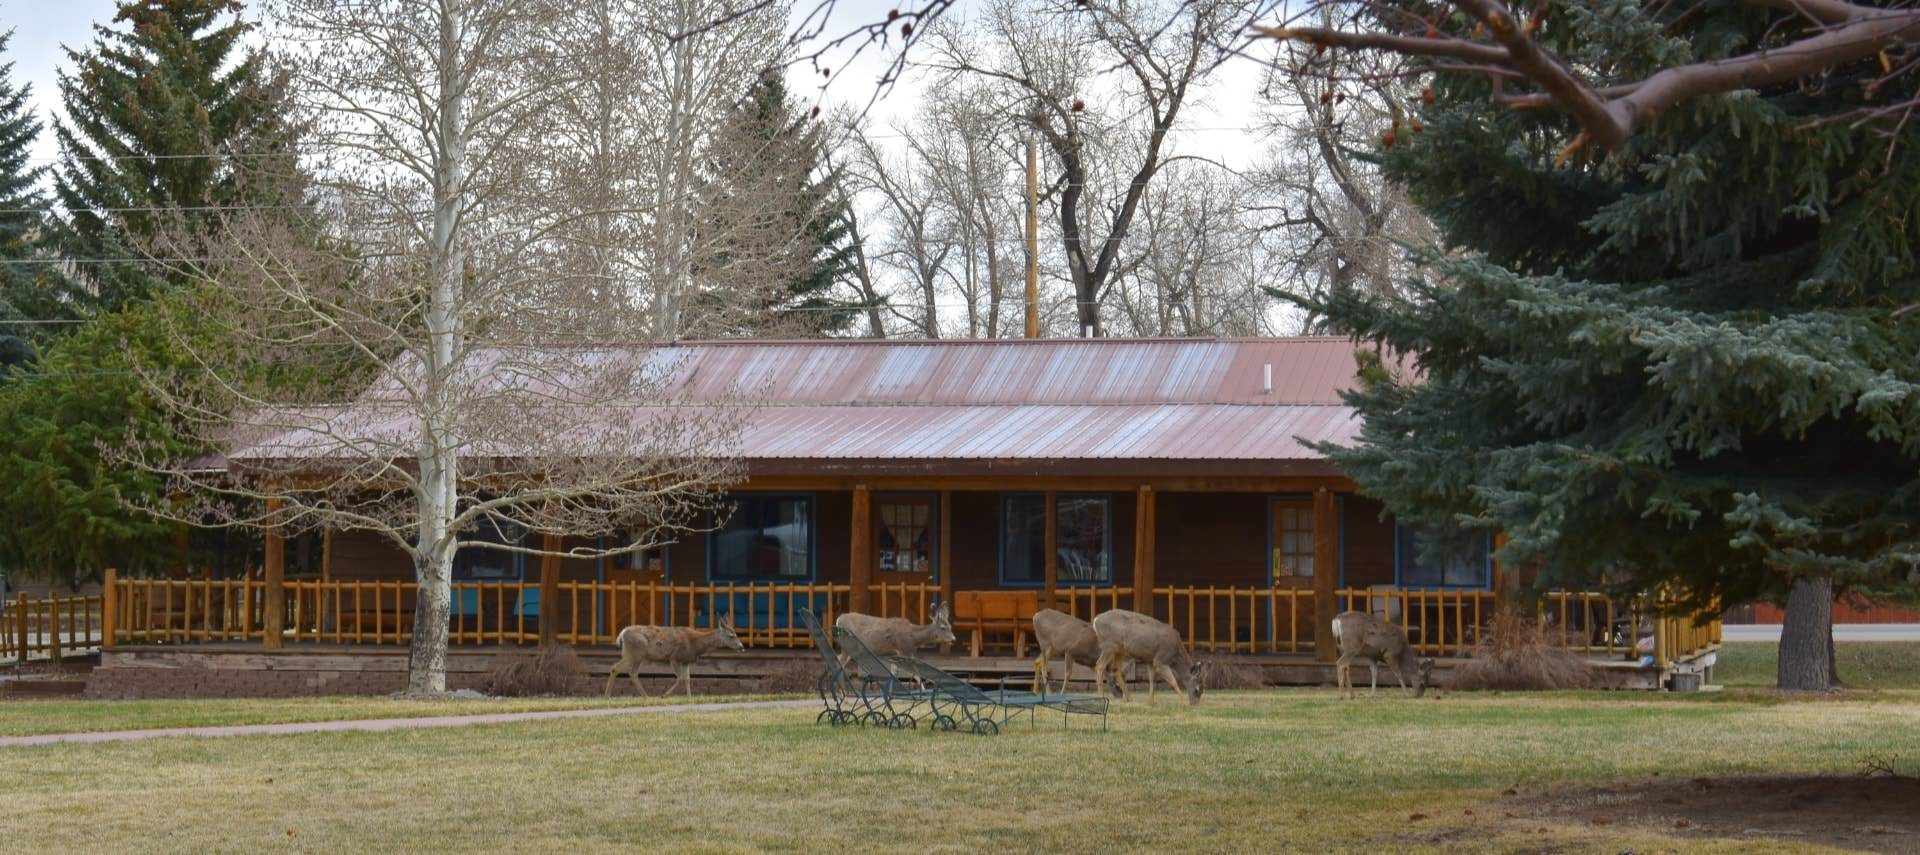 Large wooden lodge with blue painted trim surrounded by large pine trees and multiple deer grazing in the green lawn